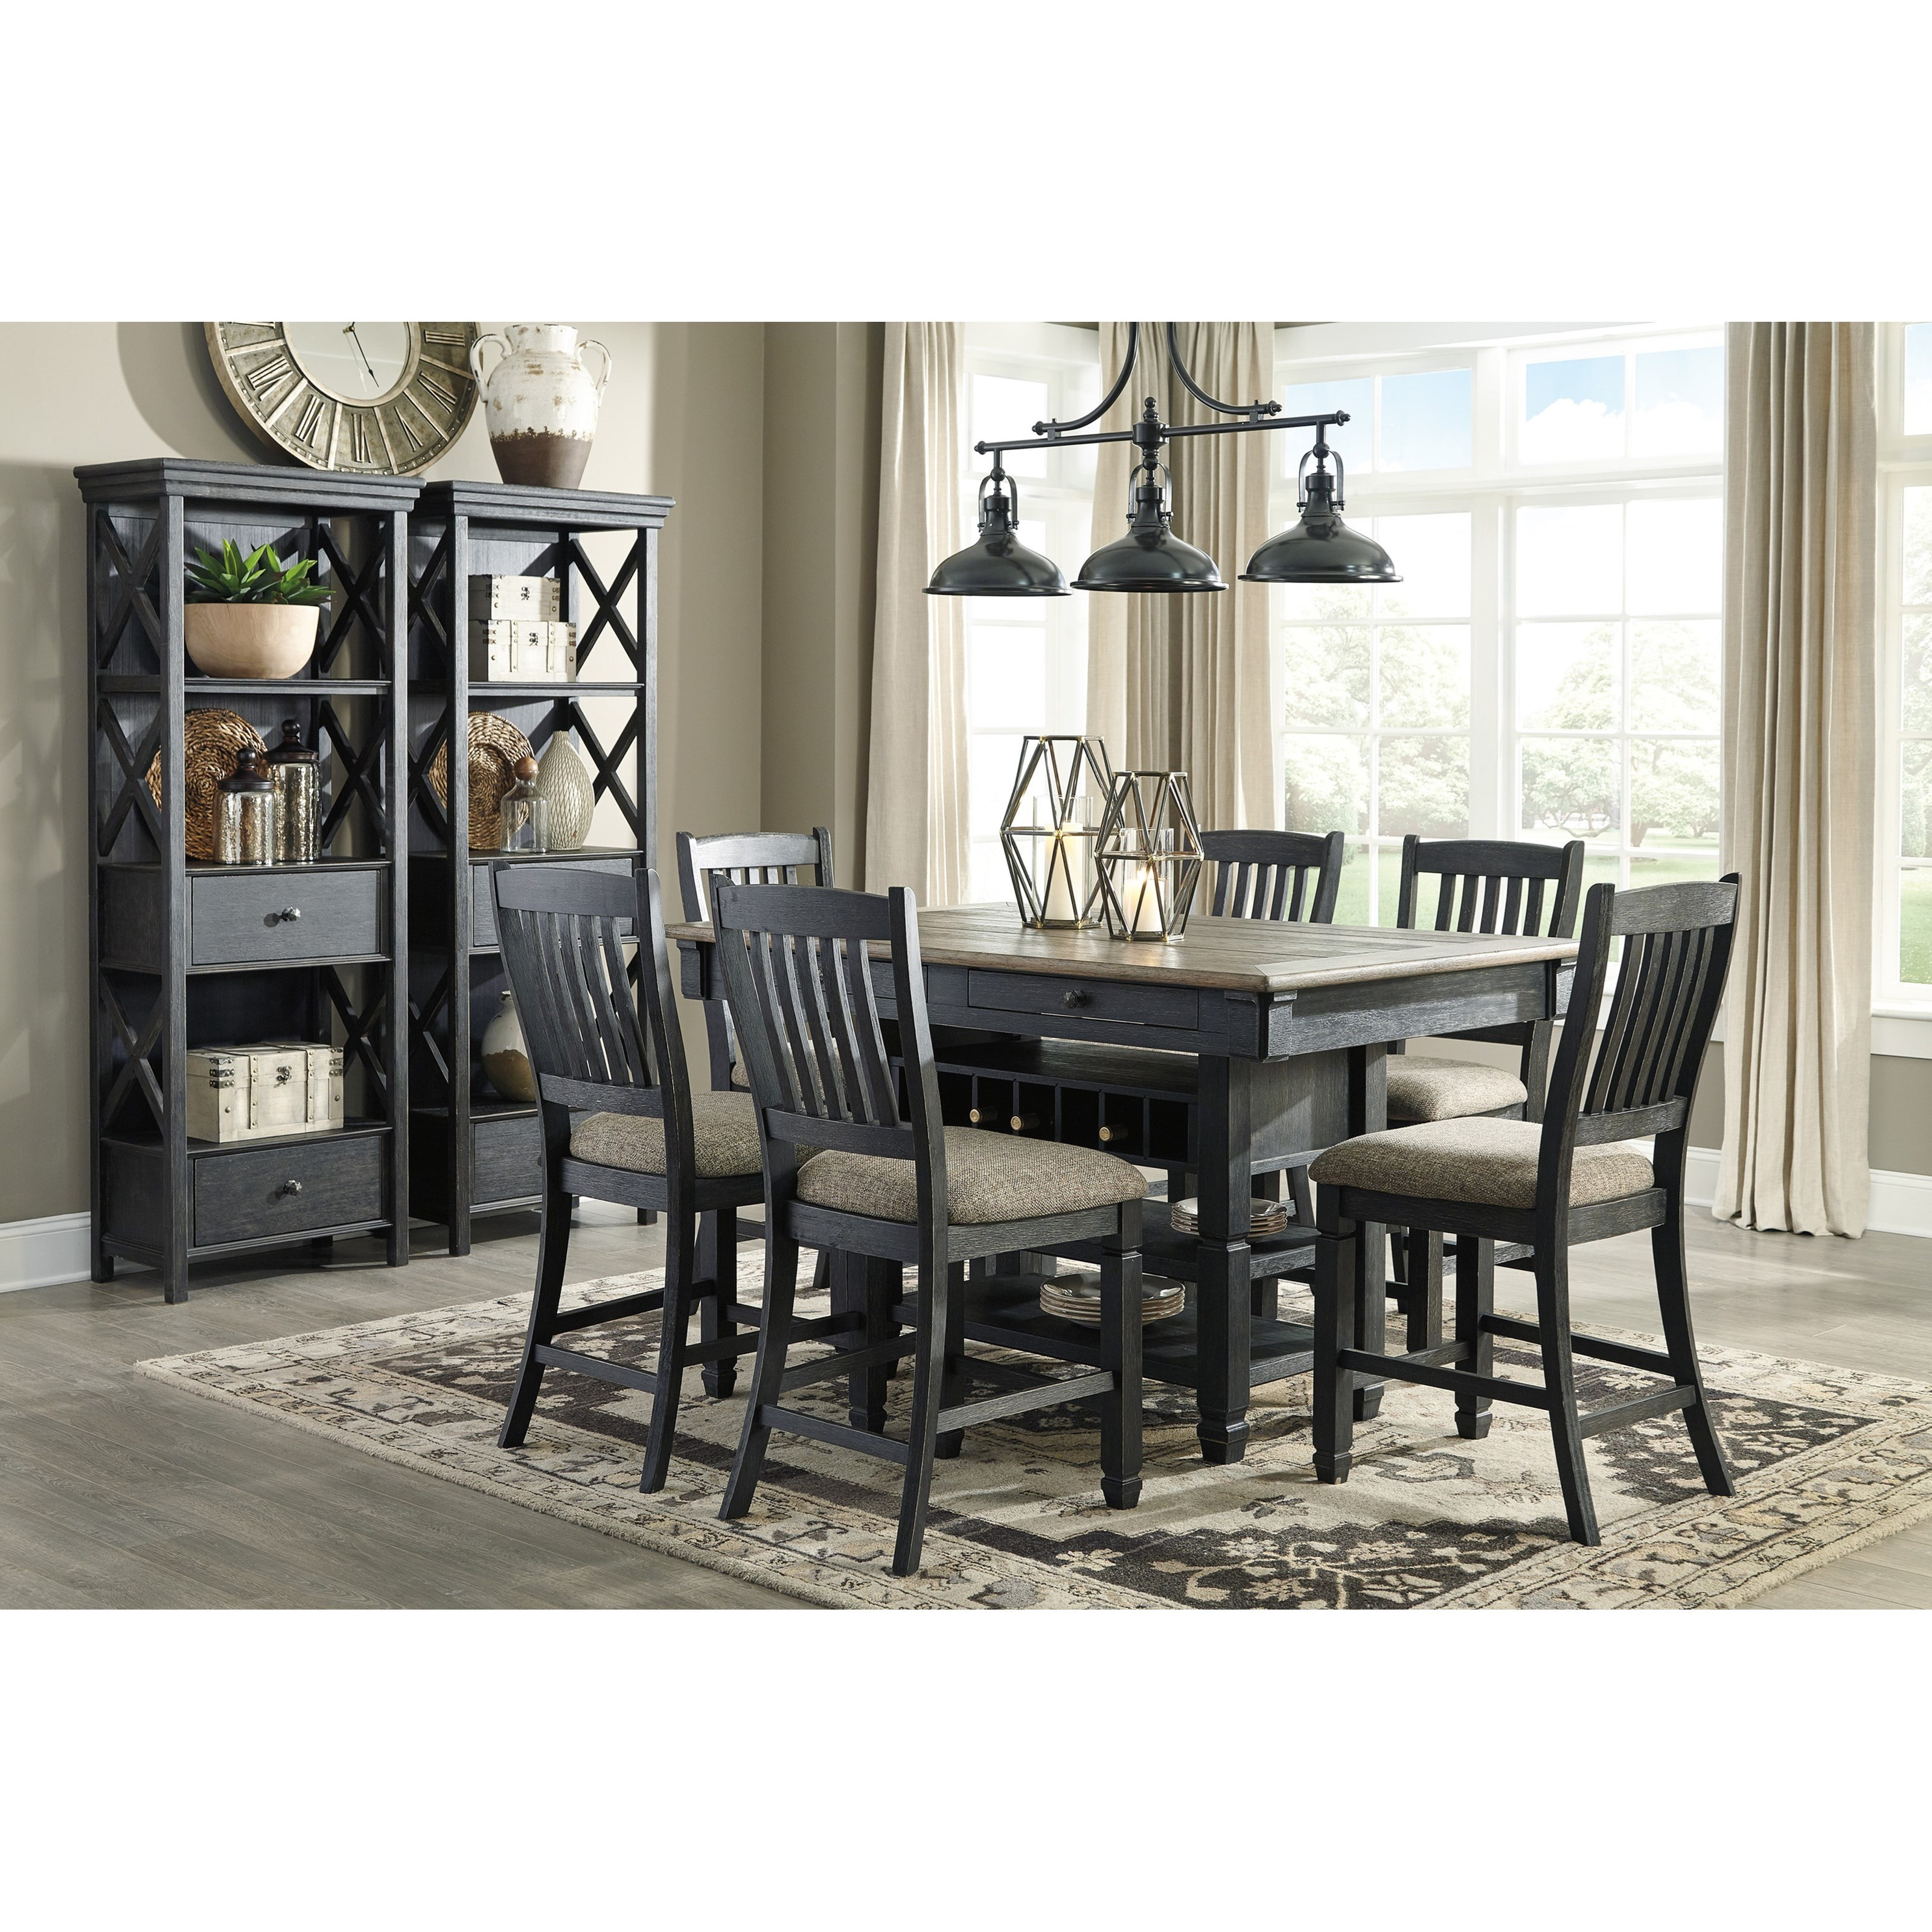 Tyler Creek Formal Dining Room Group by Signature Design by Ashley at Northeast Factory Direct